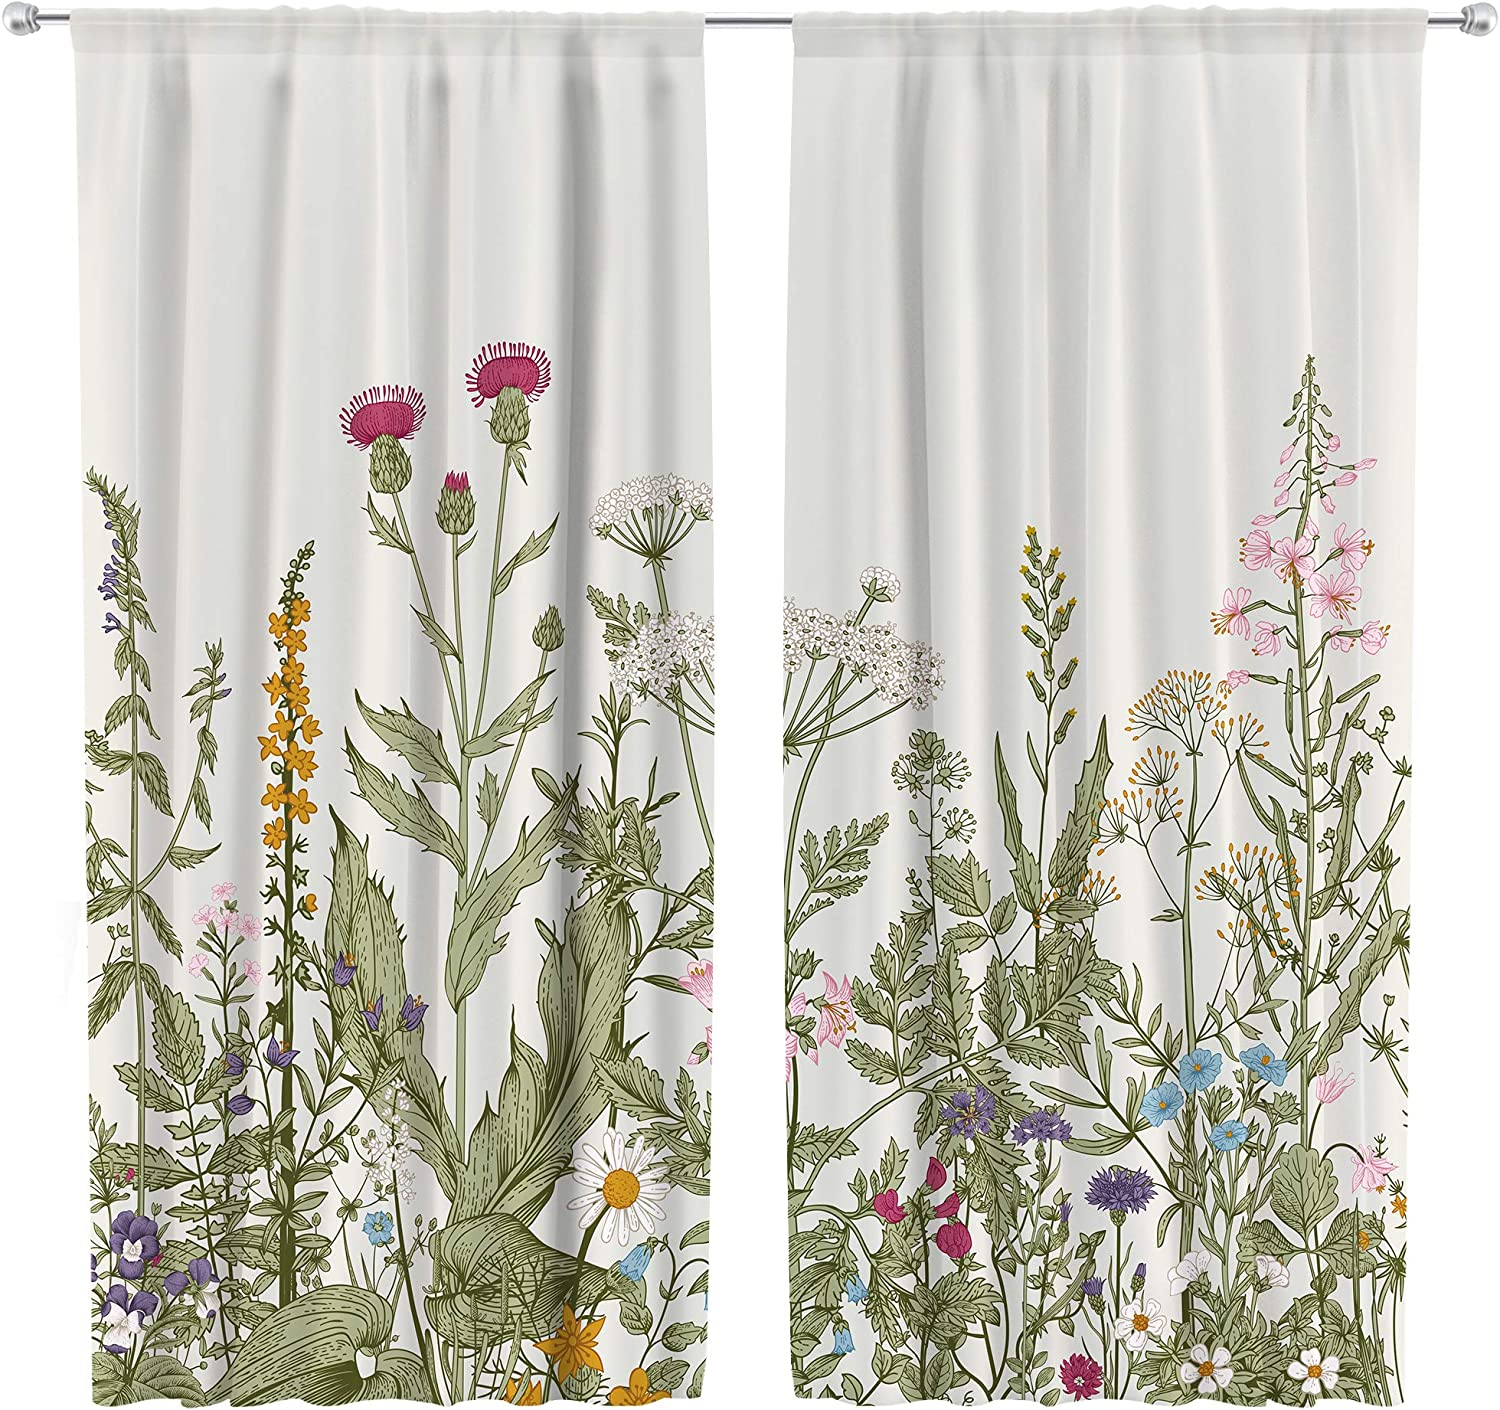 Riyidecor Green Leaves Curtains Floral Botanical Printed Rod Pocket Artwork Wild Flower Tulip Plants Ivy Herbs Rustic Living Room Bedroom Window Drapes Treatment Fabric 2 Panels 42 X 63 Inch Furniture